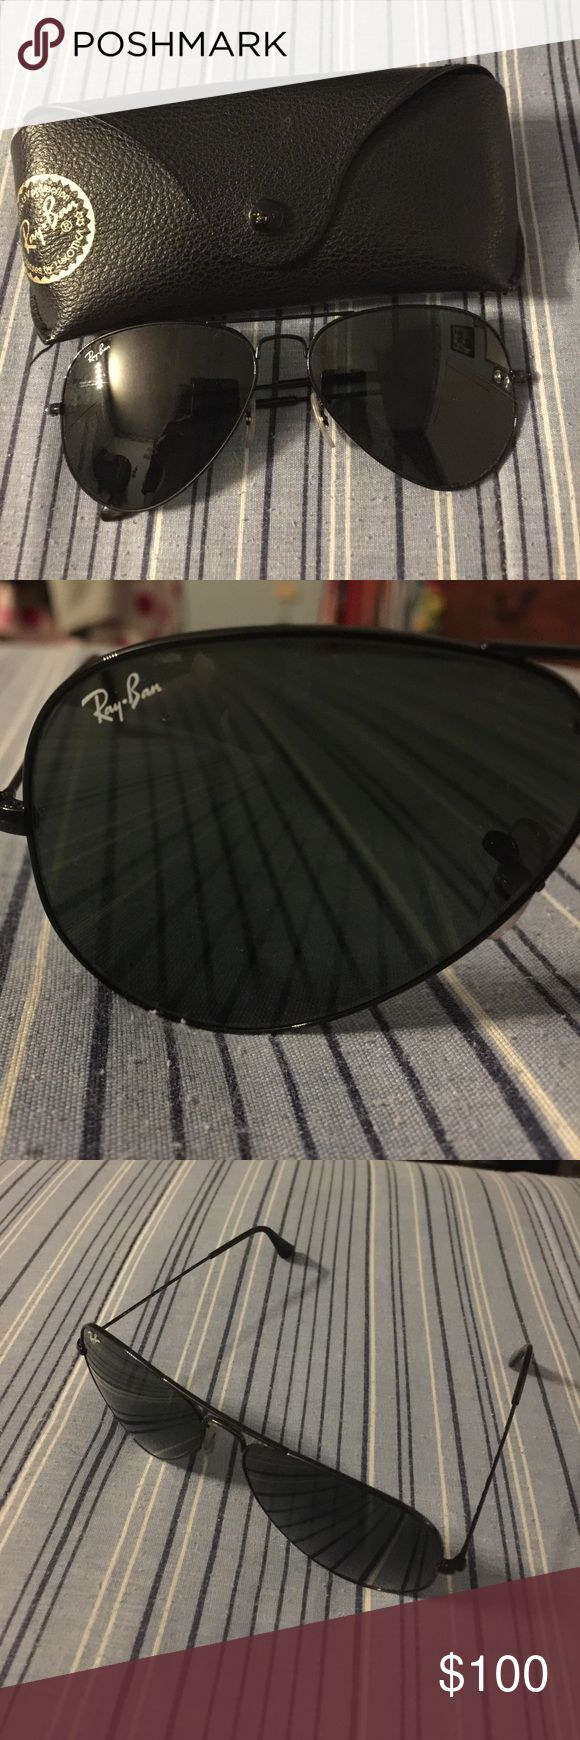 Ray Ban Sunglasses Large Aviator Ray Ban Large Aviators with Black frame and Black lenses gently used. Ray-Ban Accessories Sunglasses